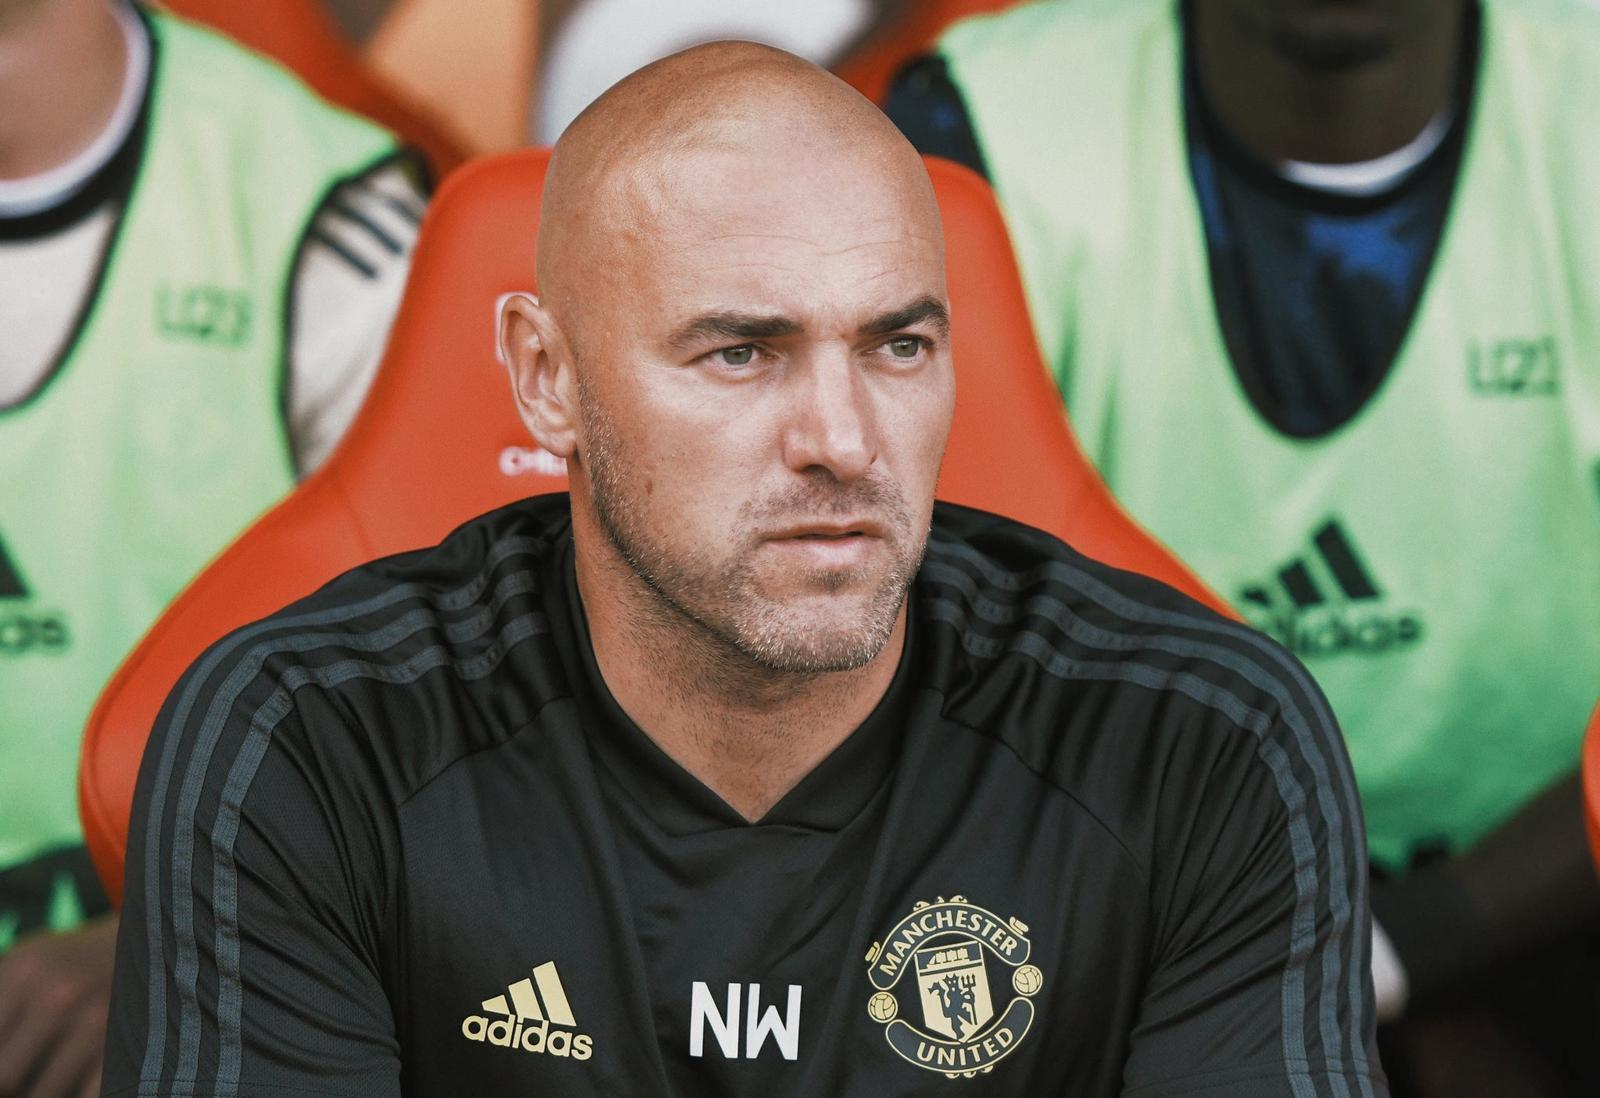 UWS podcast 481. Exclusive with Neil Wood, coach of MUFC 23s.